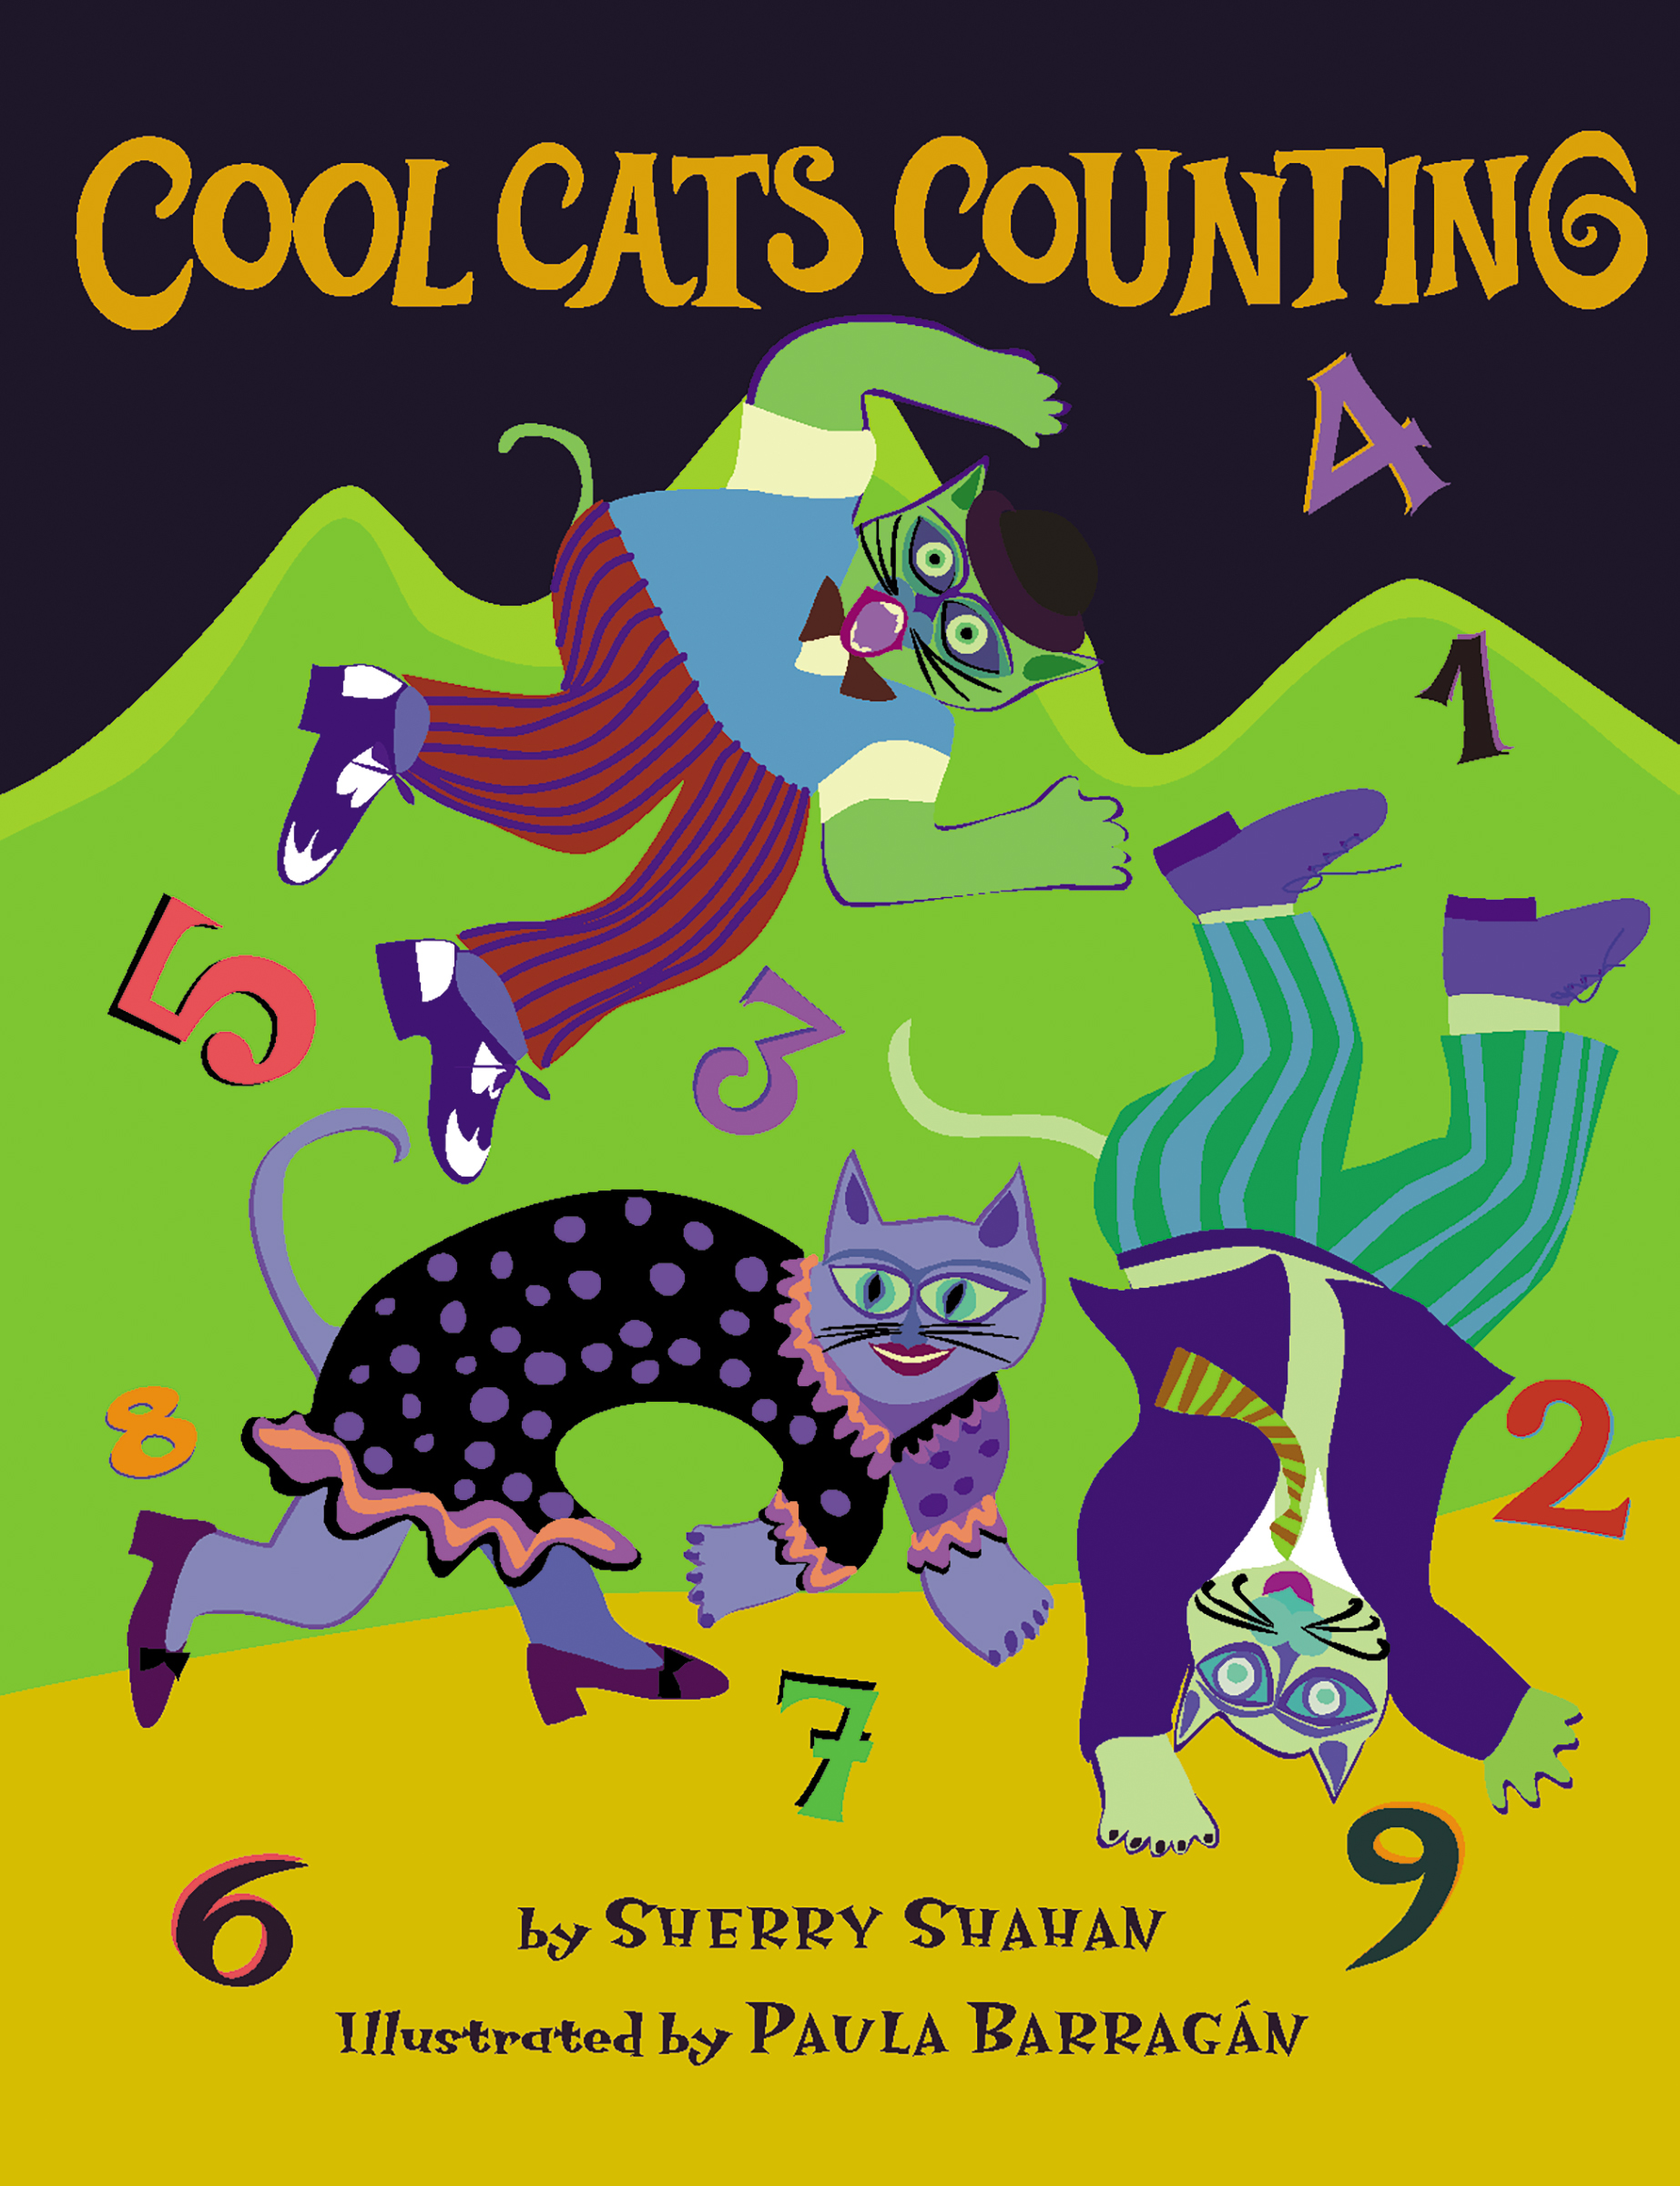 Cool Cats Counting Read Along Or Enhanced Ebook